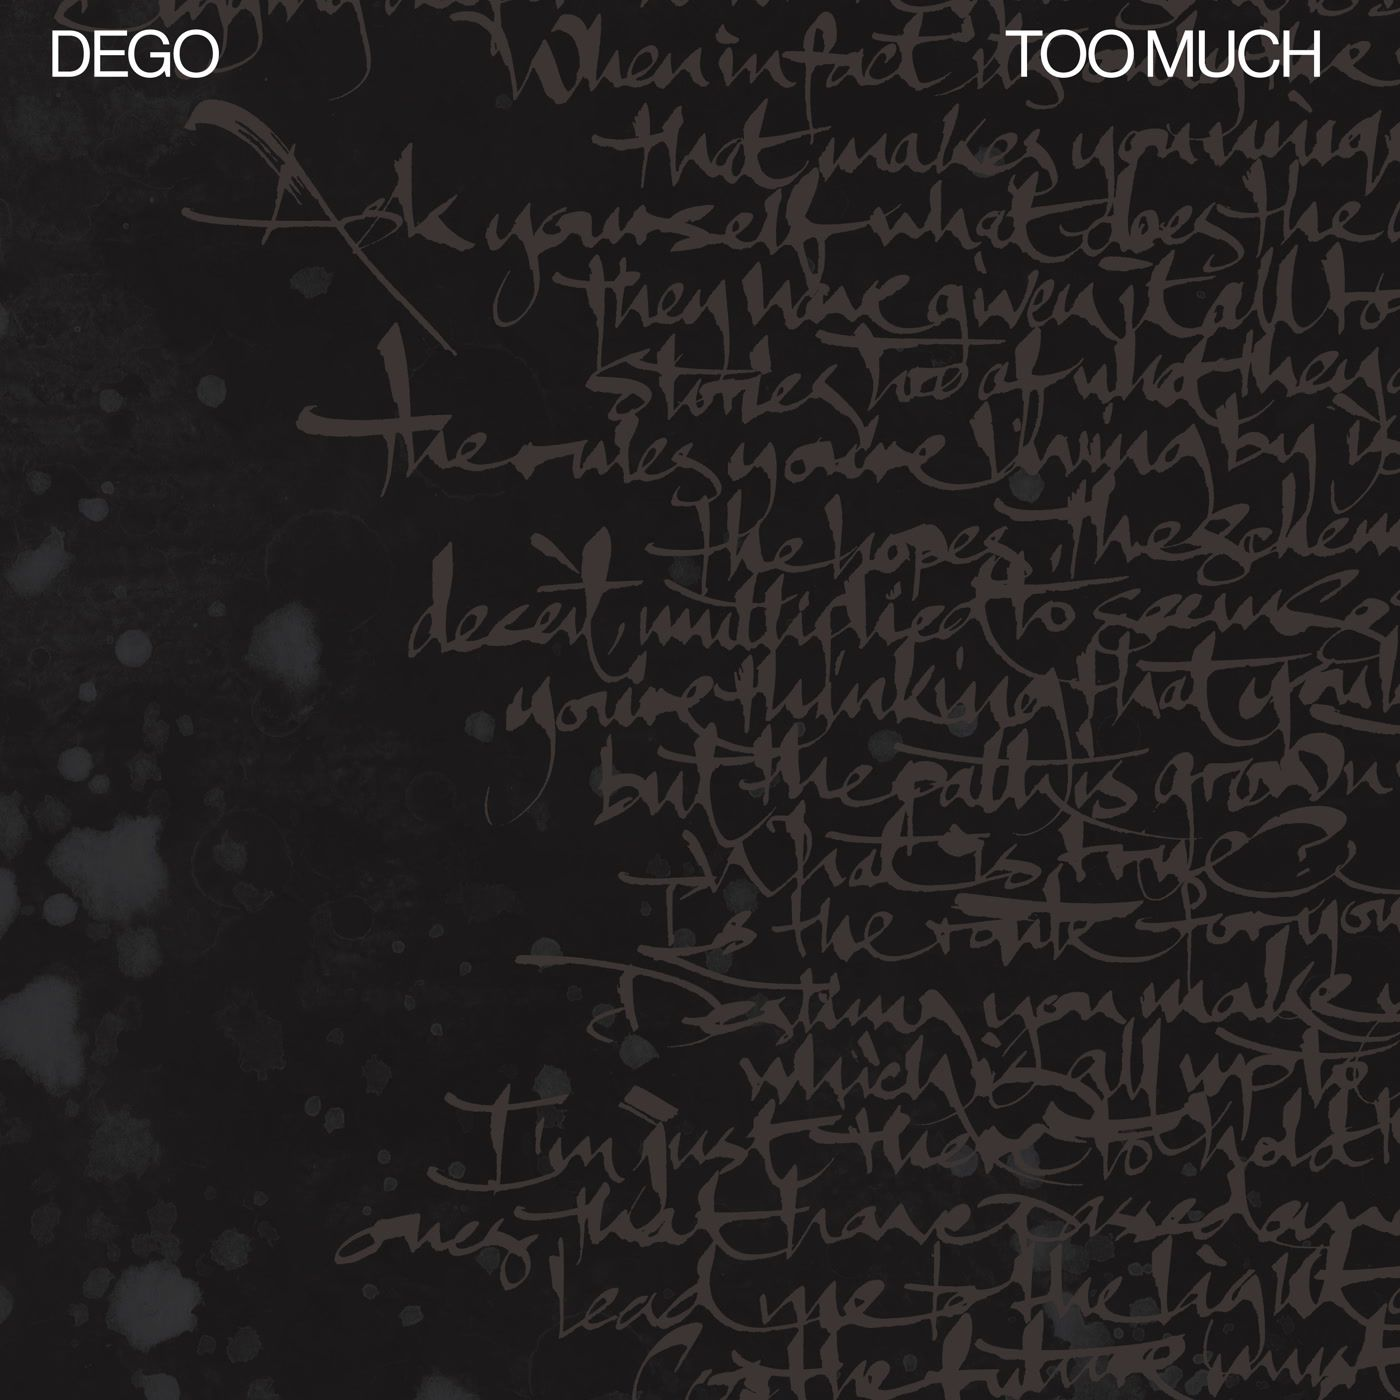 Dego - Too Much